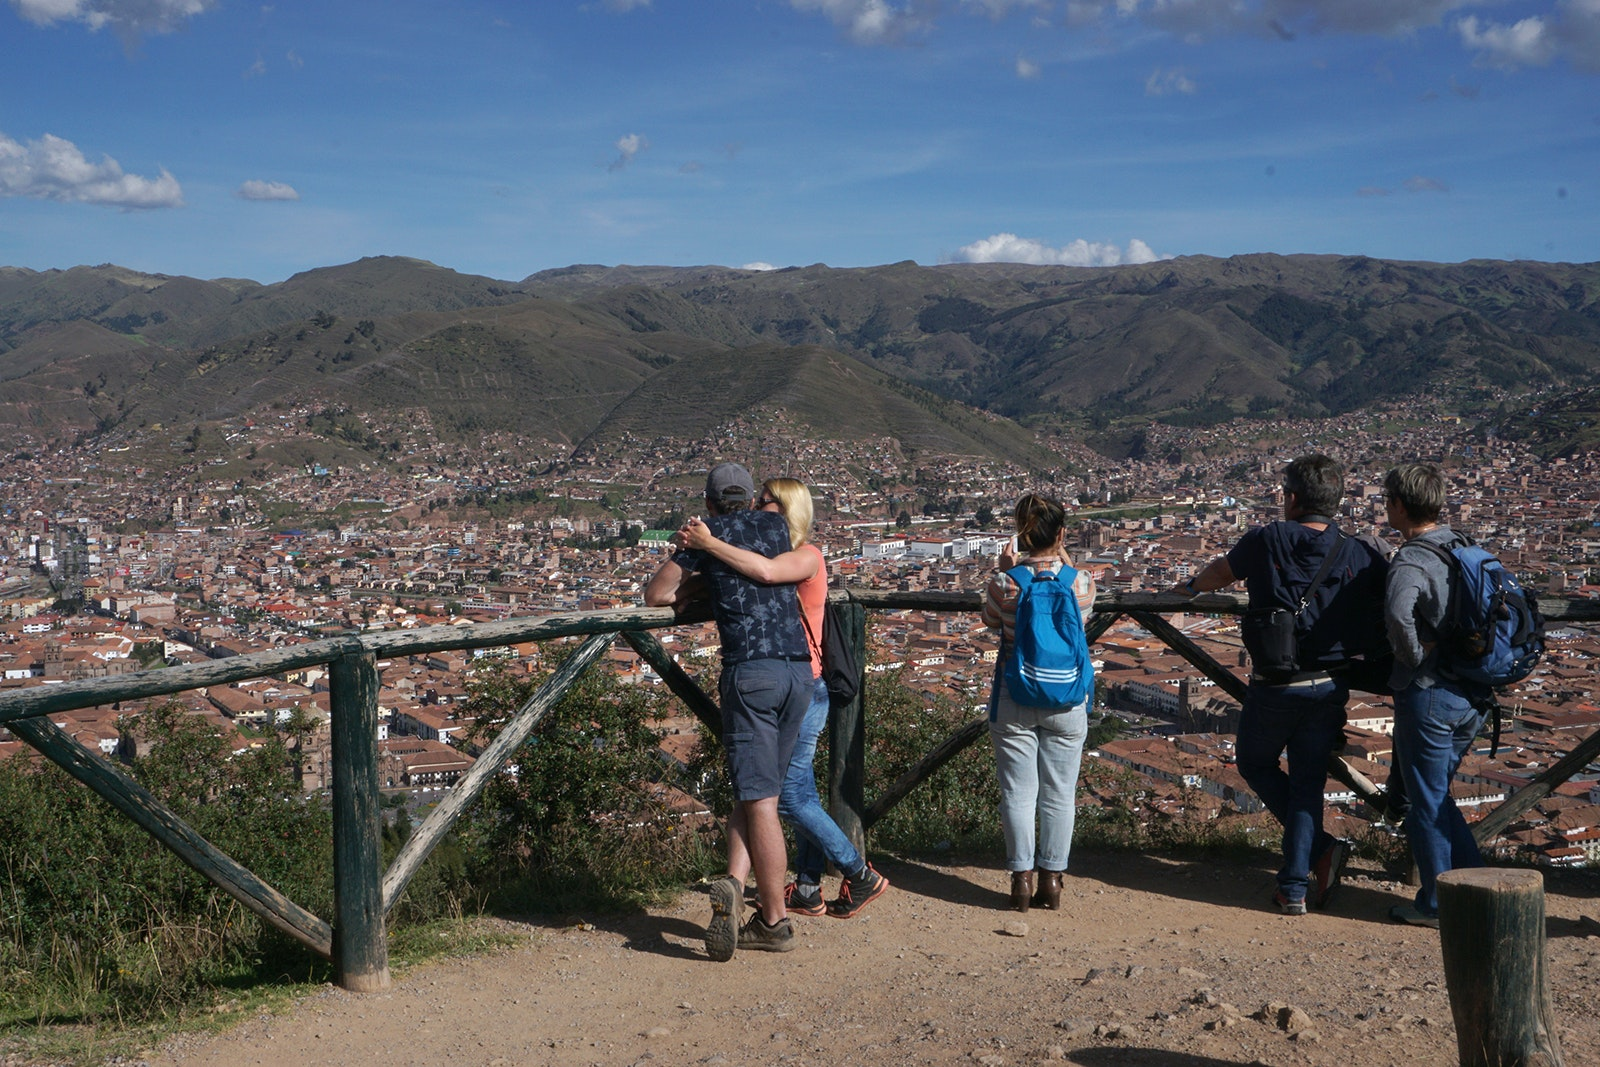 Tourists take in a view of Cuzco.